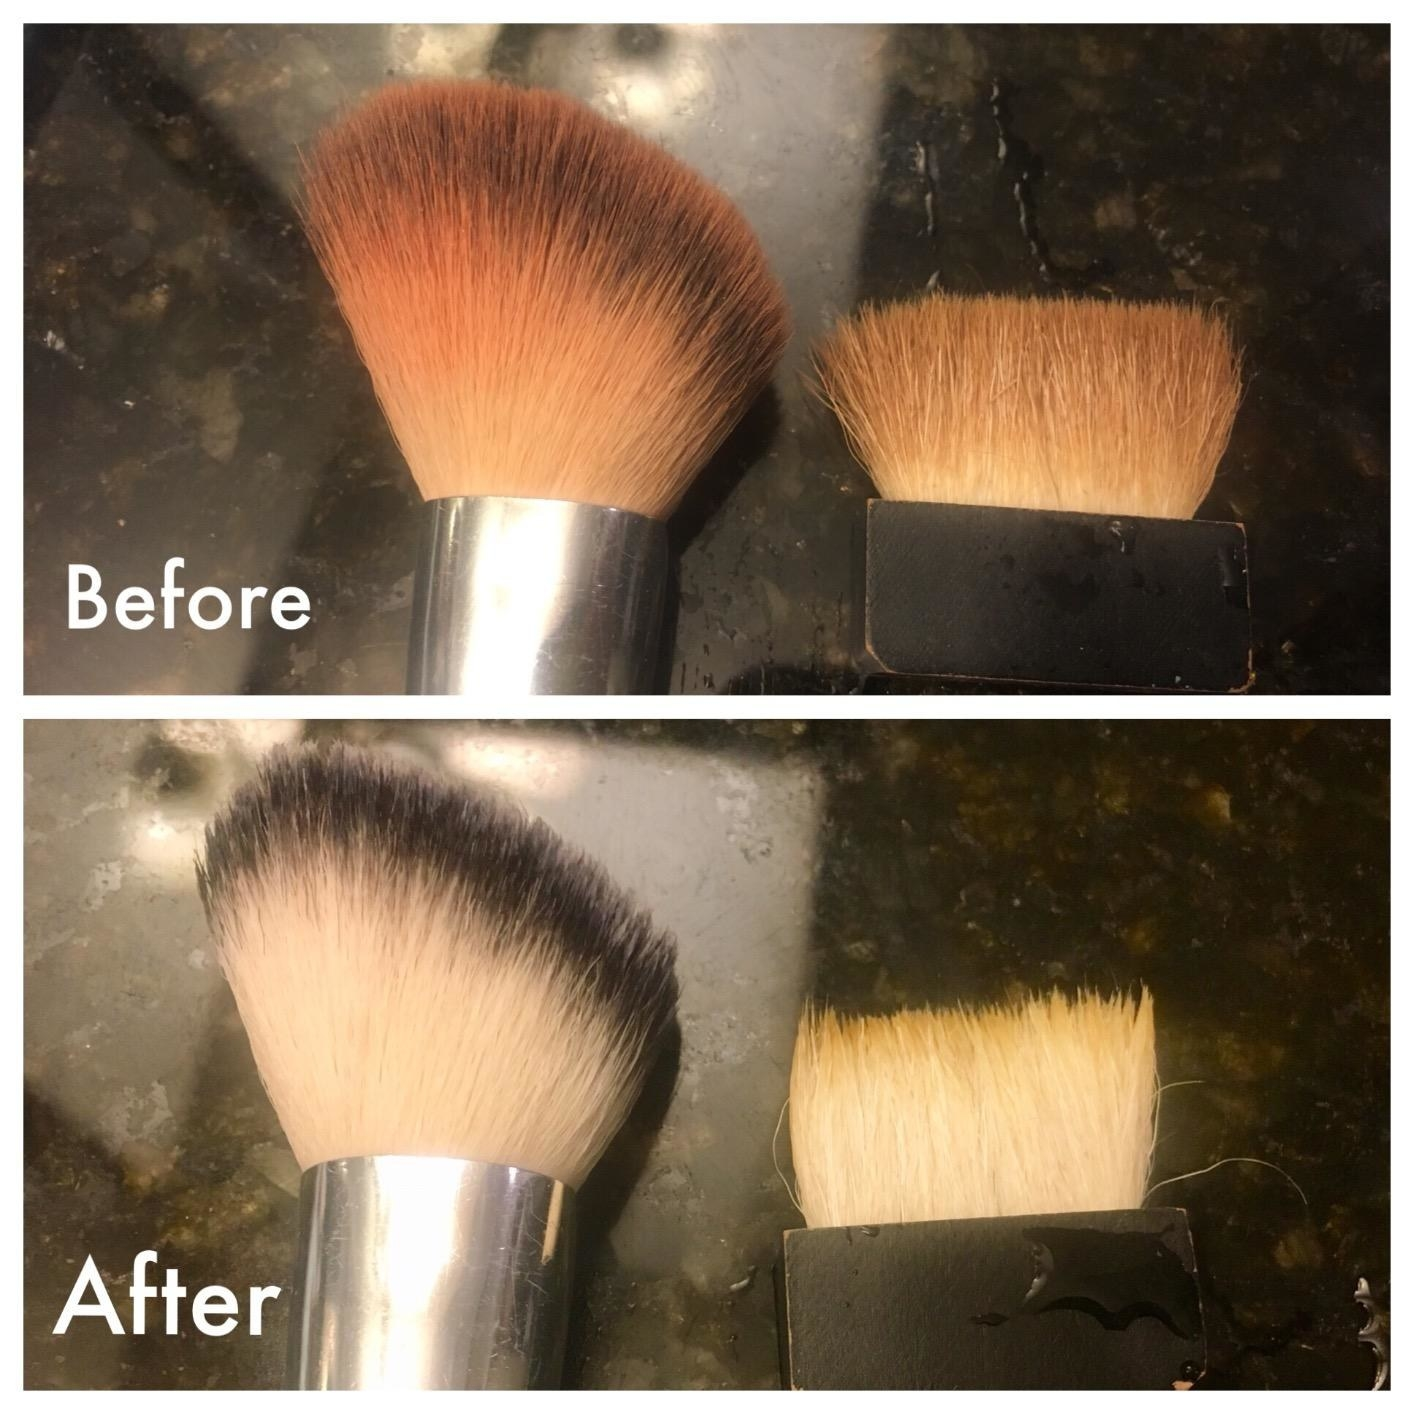 A reviewer showing makeup brushes with powder and blush on it at first, then the brushes looking cleaner after